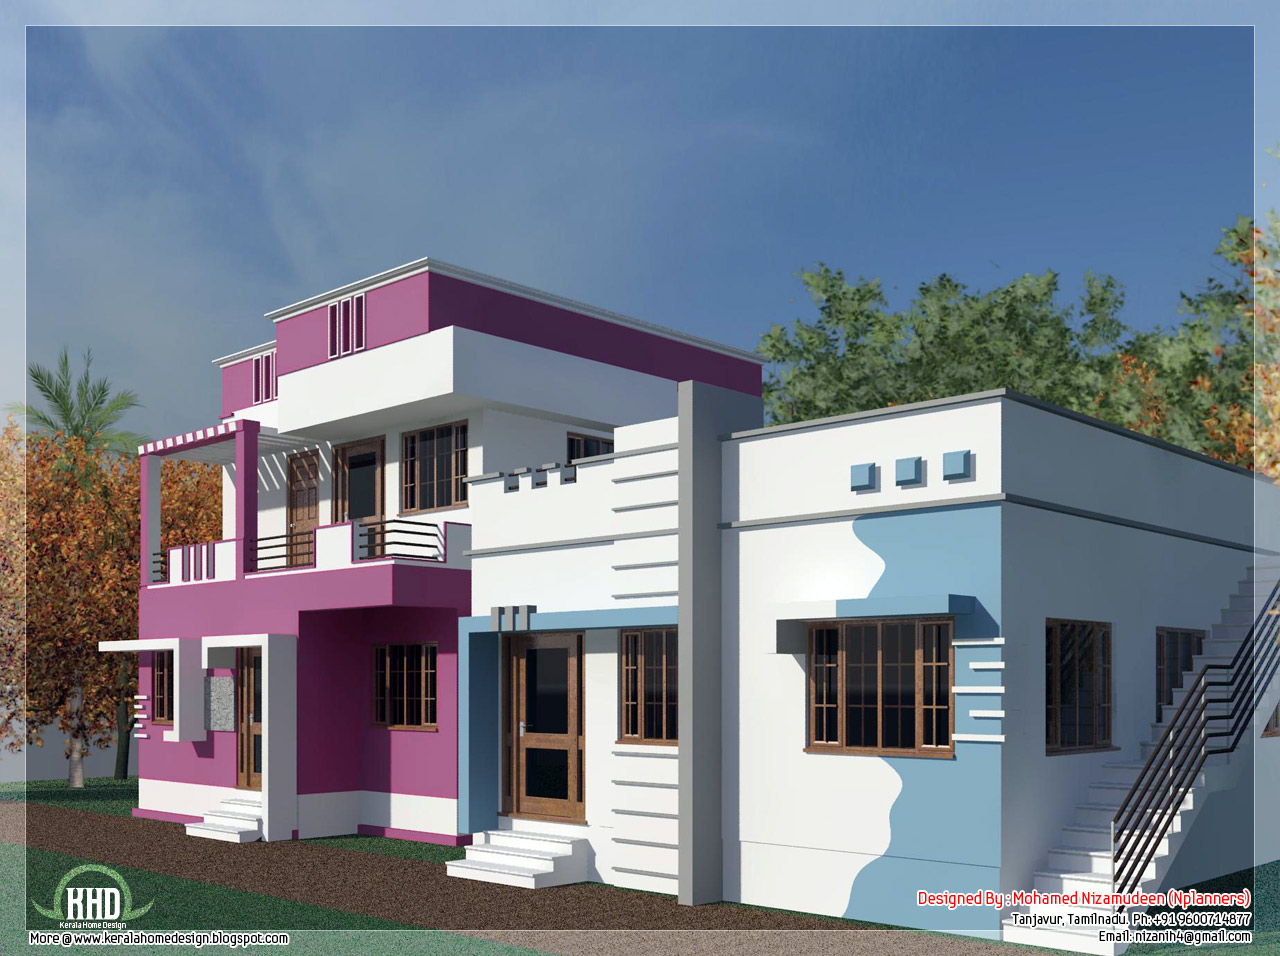 Tamilnadu model home design in 3000 kerala home for Latest model home design